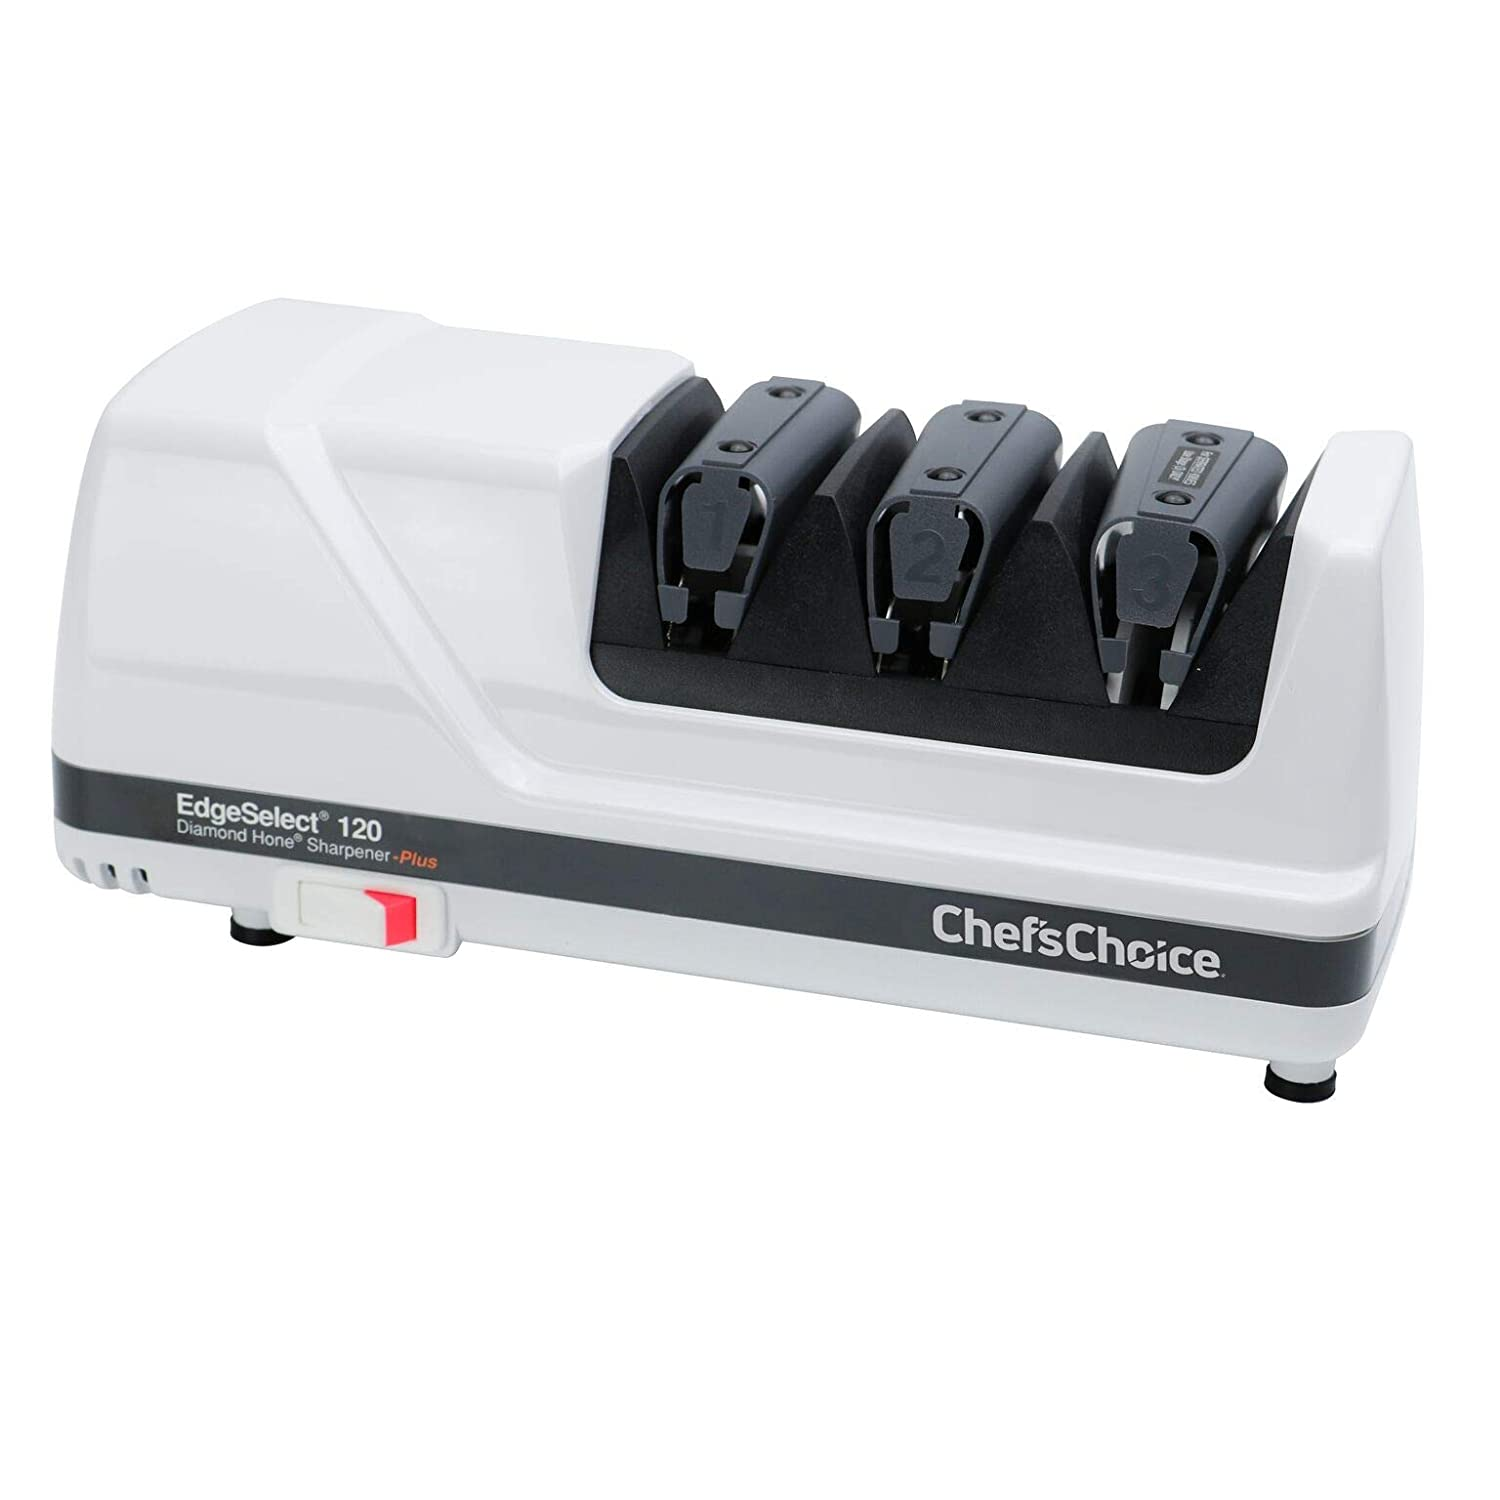 B00004S1B8 Chef'sChoice 120 Diamond Hone EdgeSelect Professional Electric Knife Sharpener for 20-Degree Edges Diamond Abrasives Precision Guides for Straight and Serrated Knives Made in USA, 3-Stage, White 61bvGkx22B1L._SL1500_